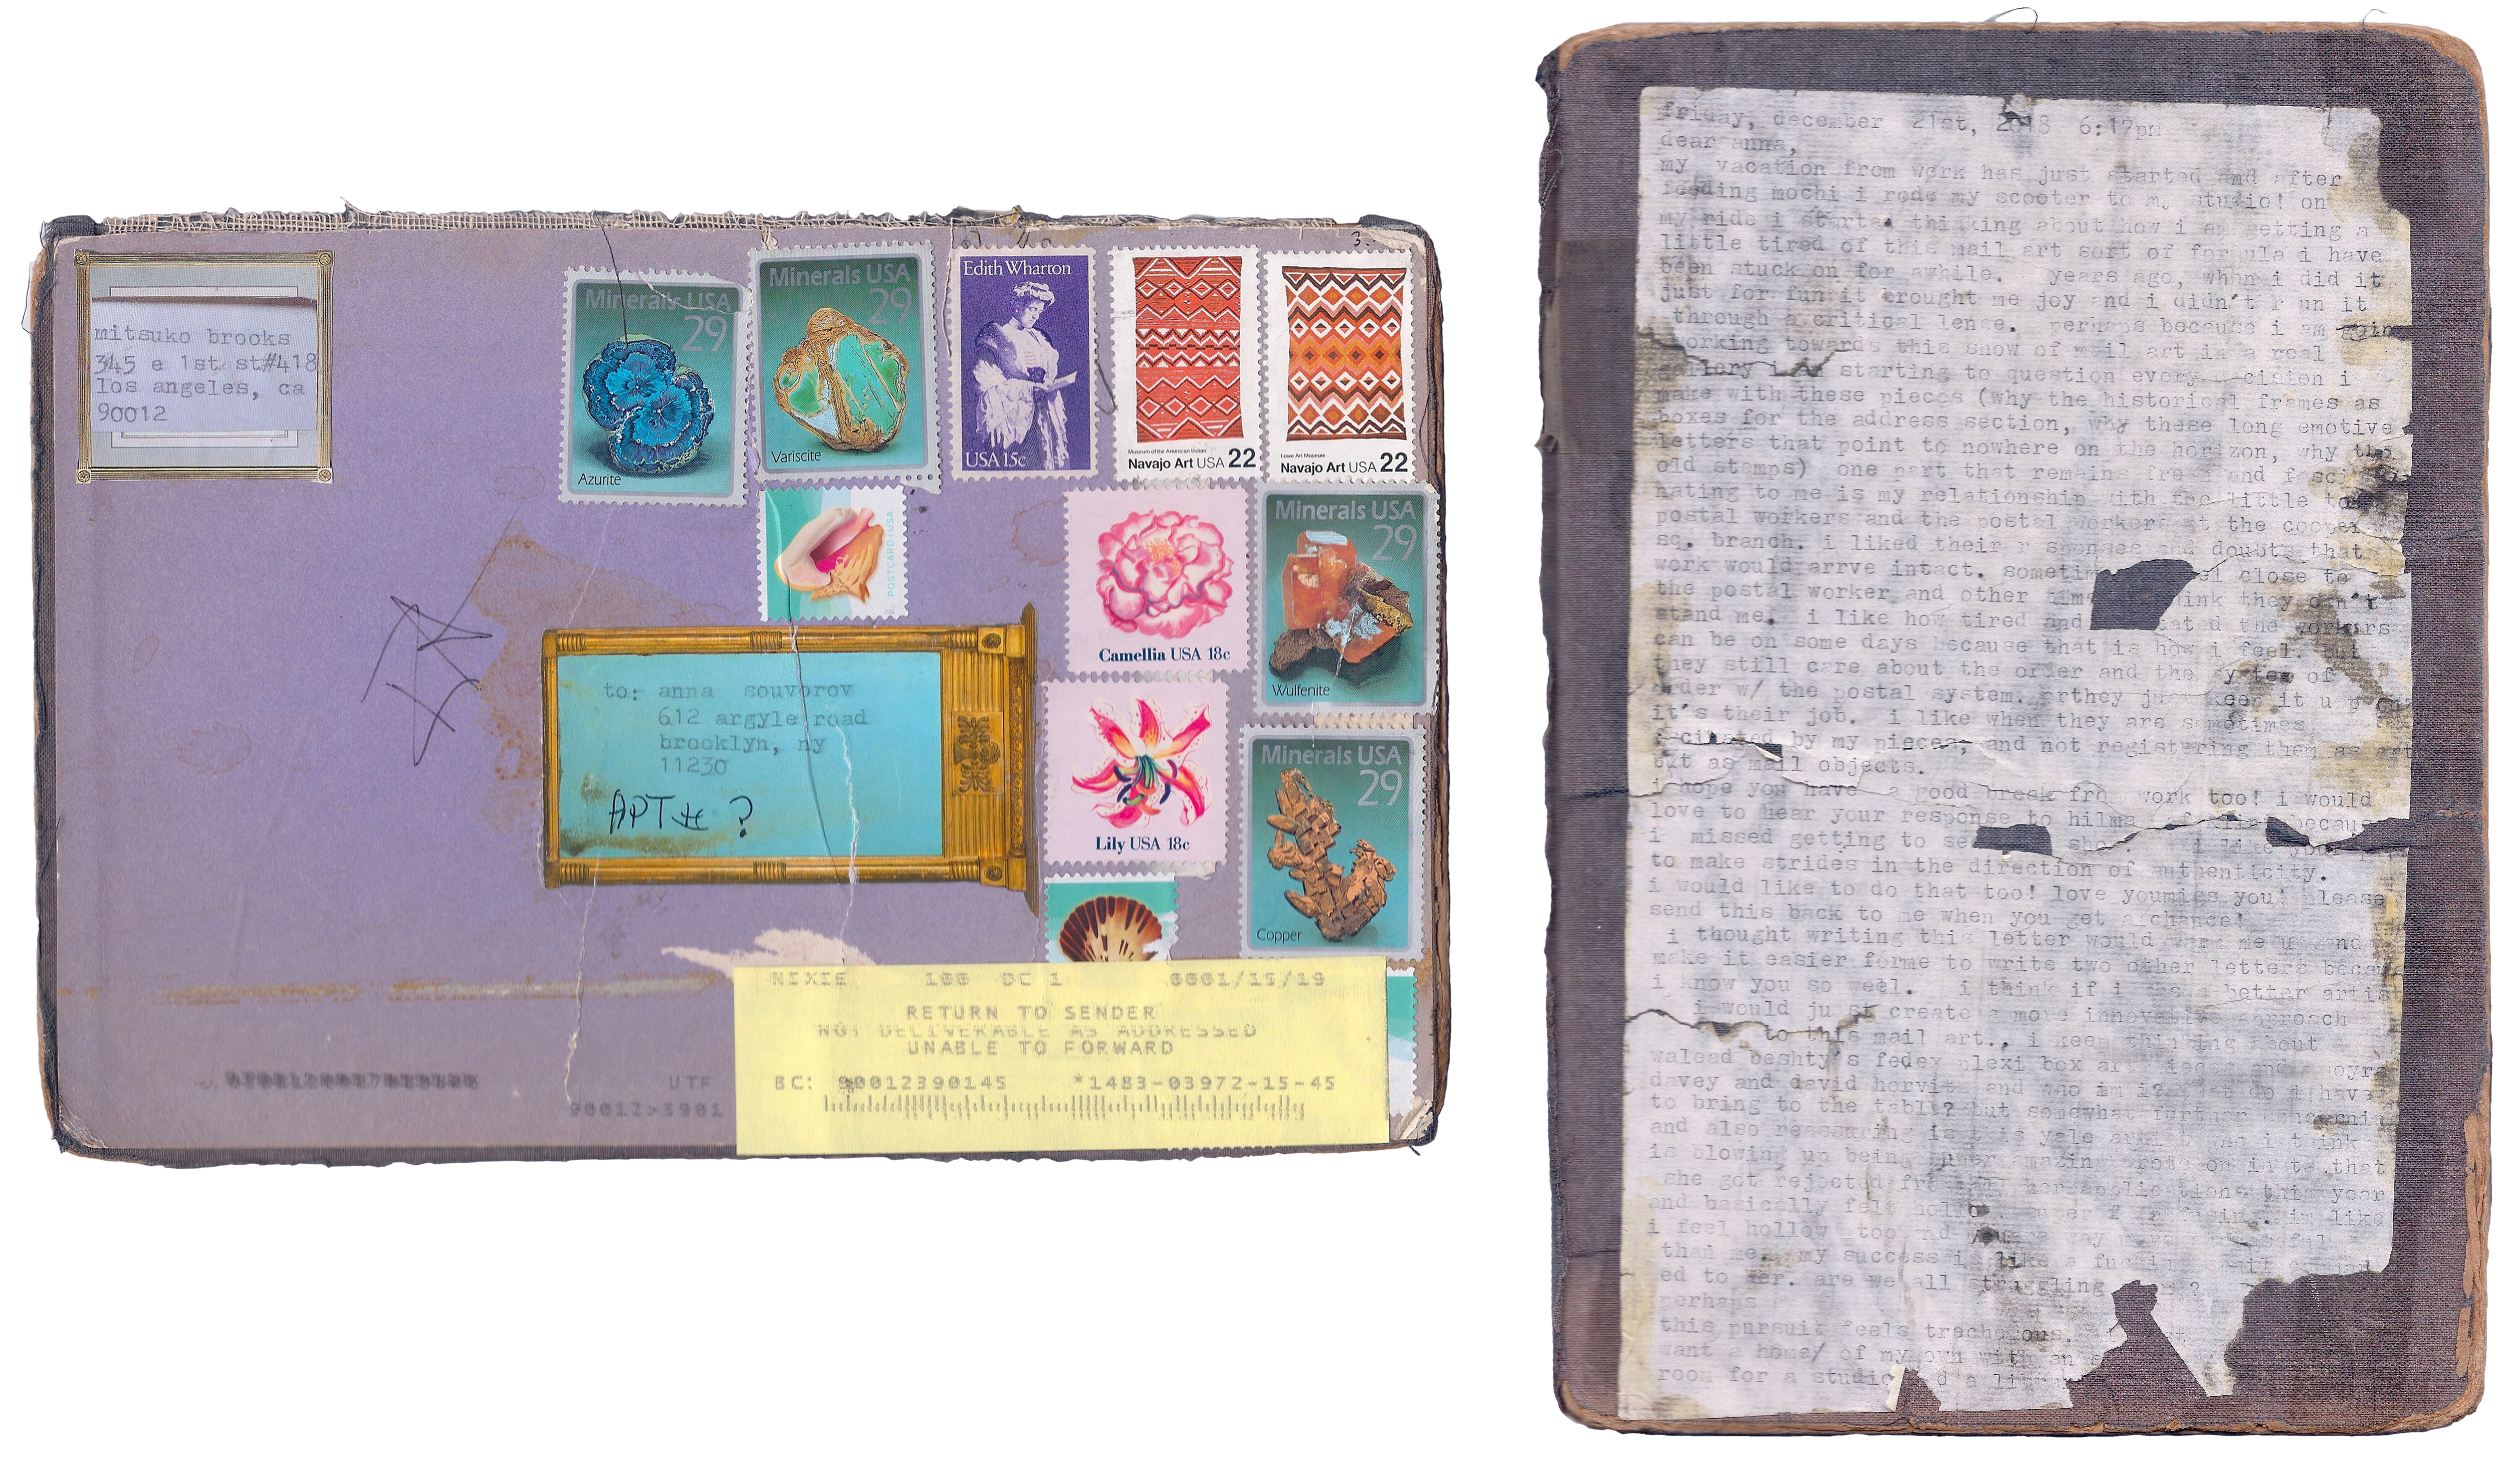 Mitsuko Brooks. <em>Mail to A.S., Dec. 22, 2018</em>, 2018. Ink, postage stamps, and paper collaged onto detached book cover, 9 1/2 x 6 1/4 inches (24 x 16 cm)